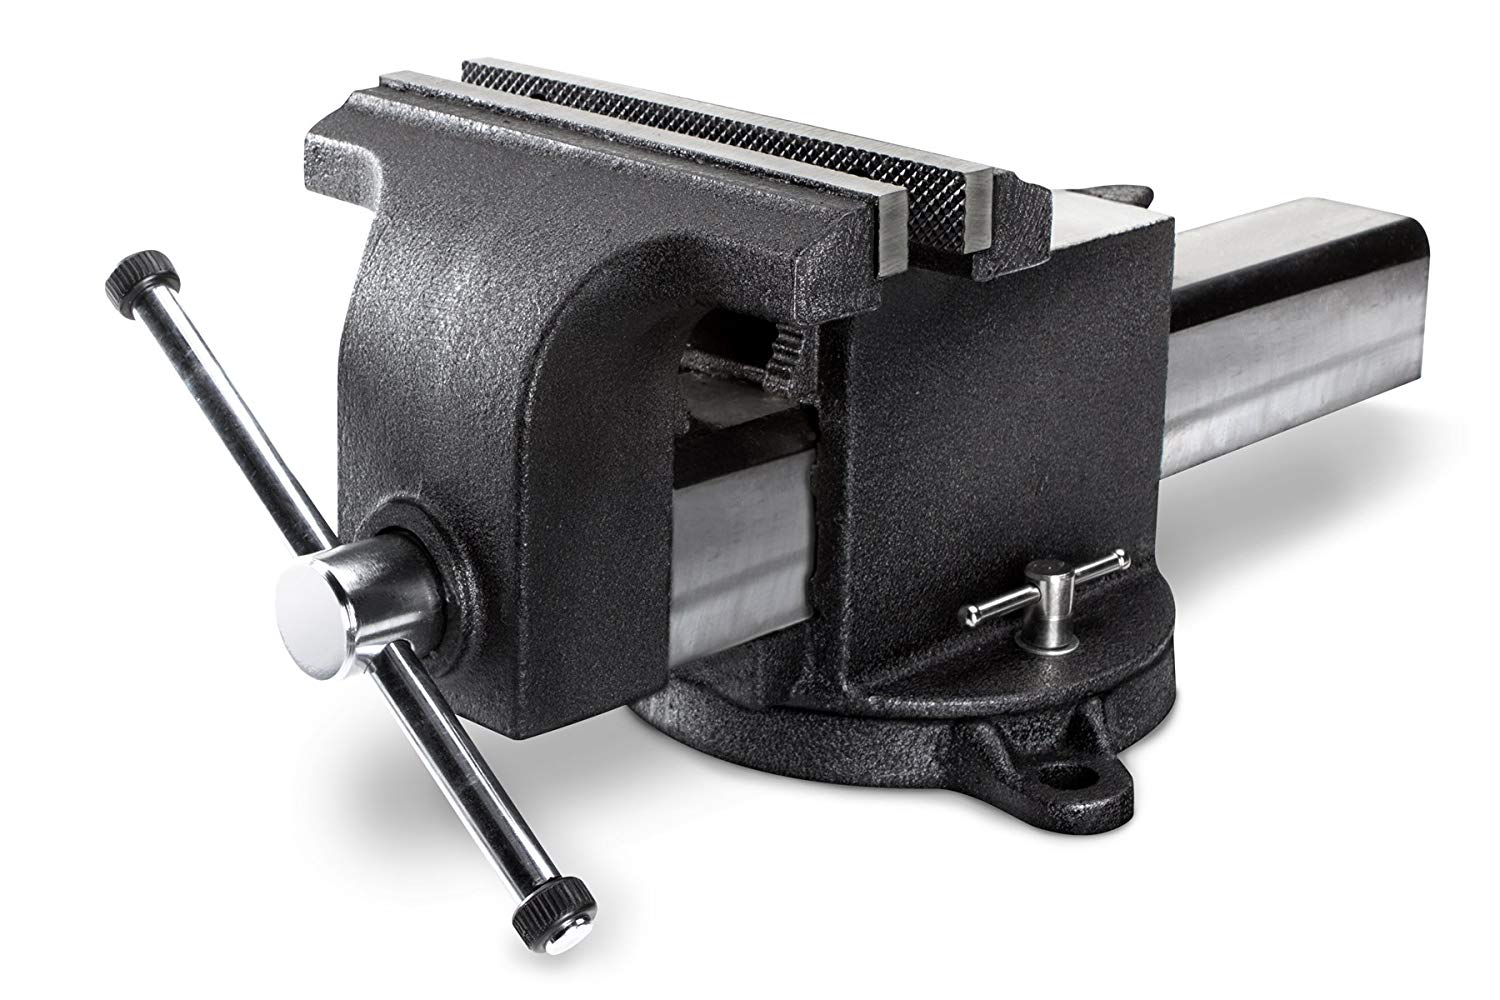 best bench vise - Tekton 5409